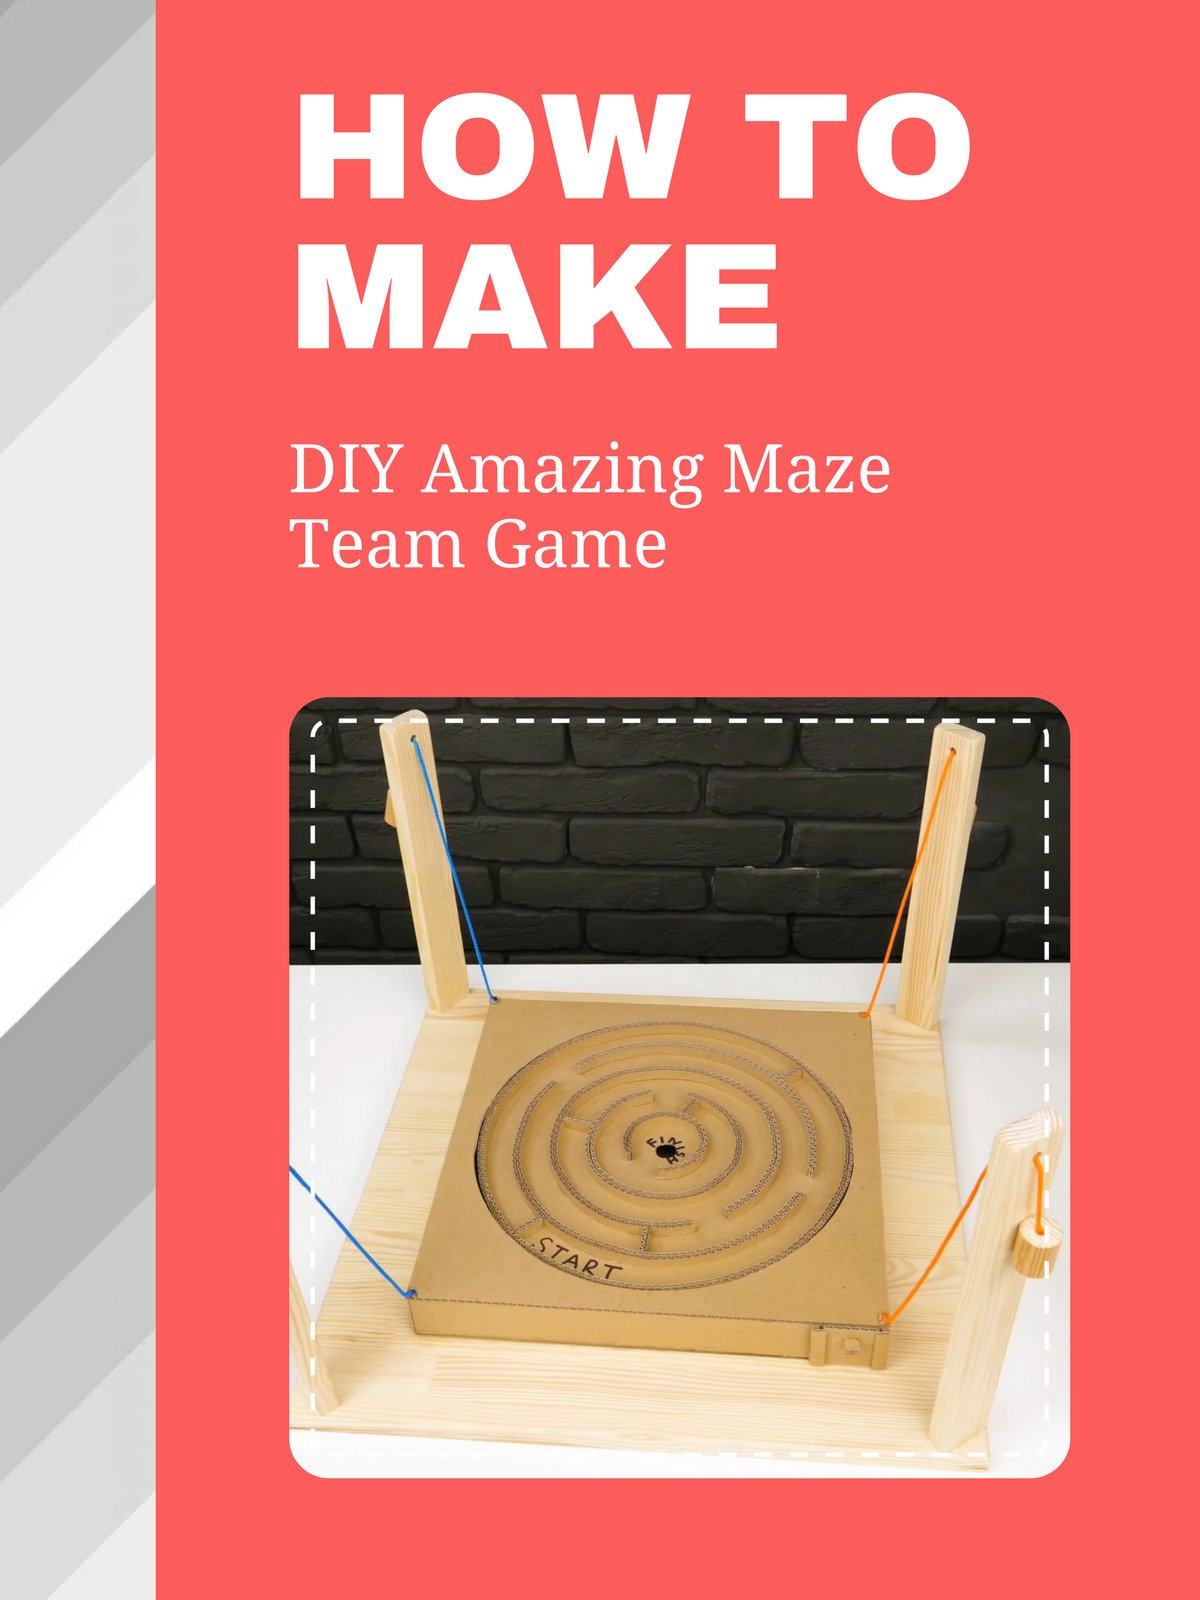 How To DIY Amazing Maze Team Game